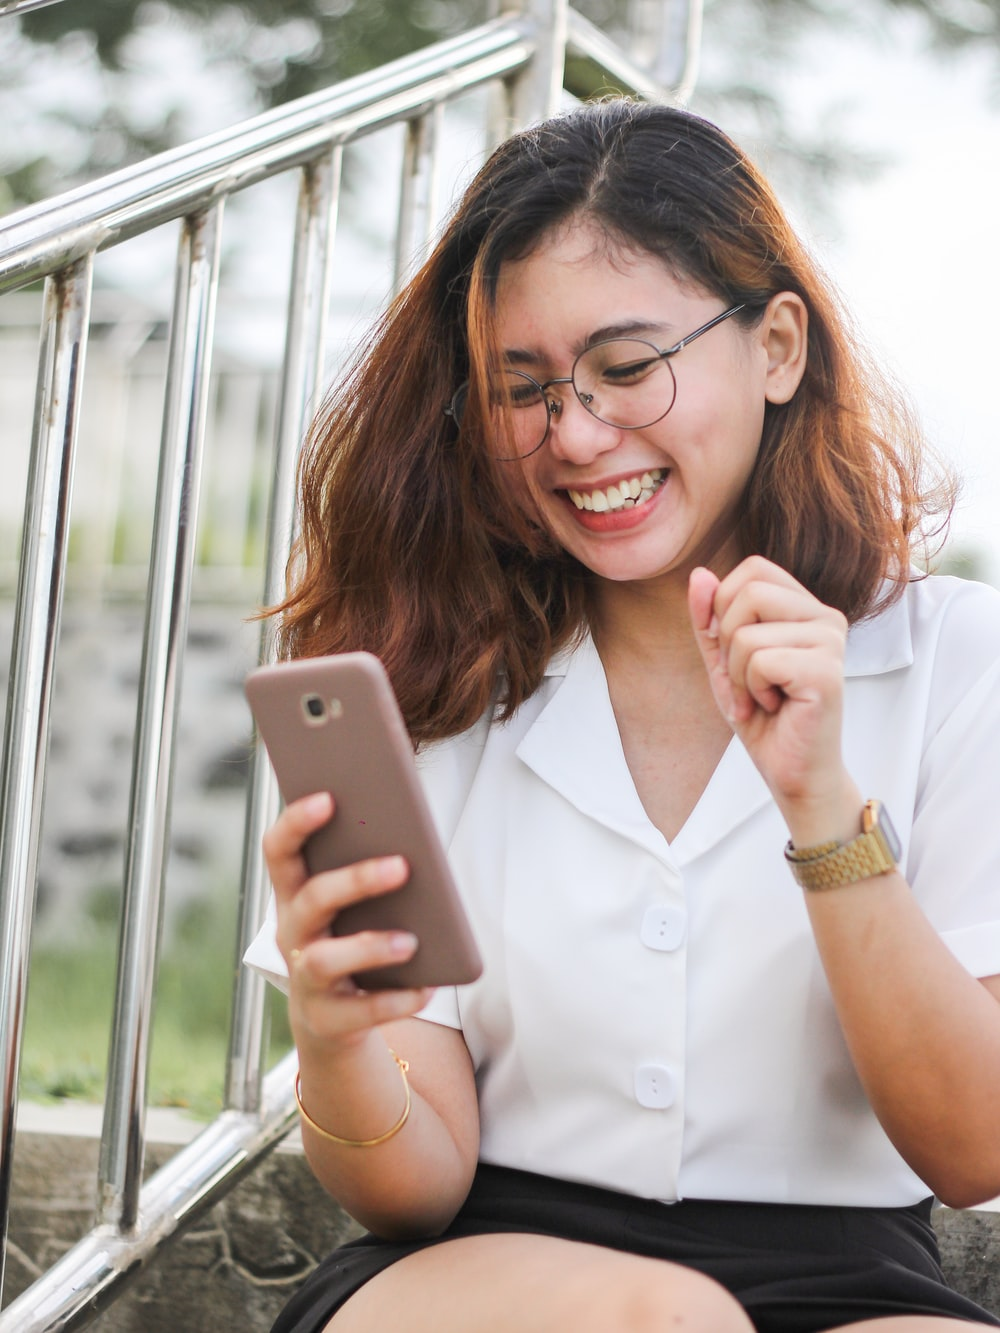 woman in white button up shirt holding silver iphone 6